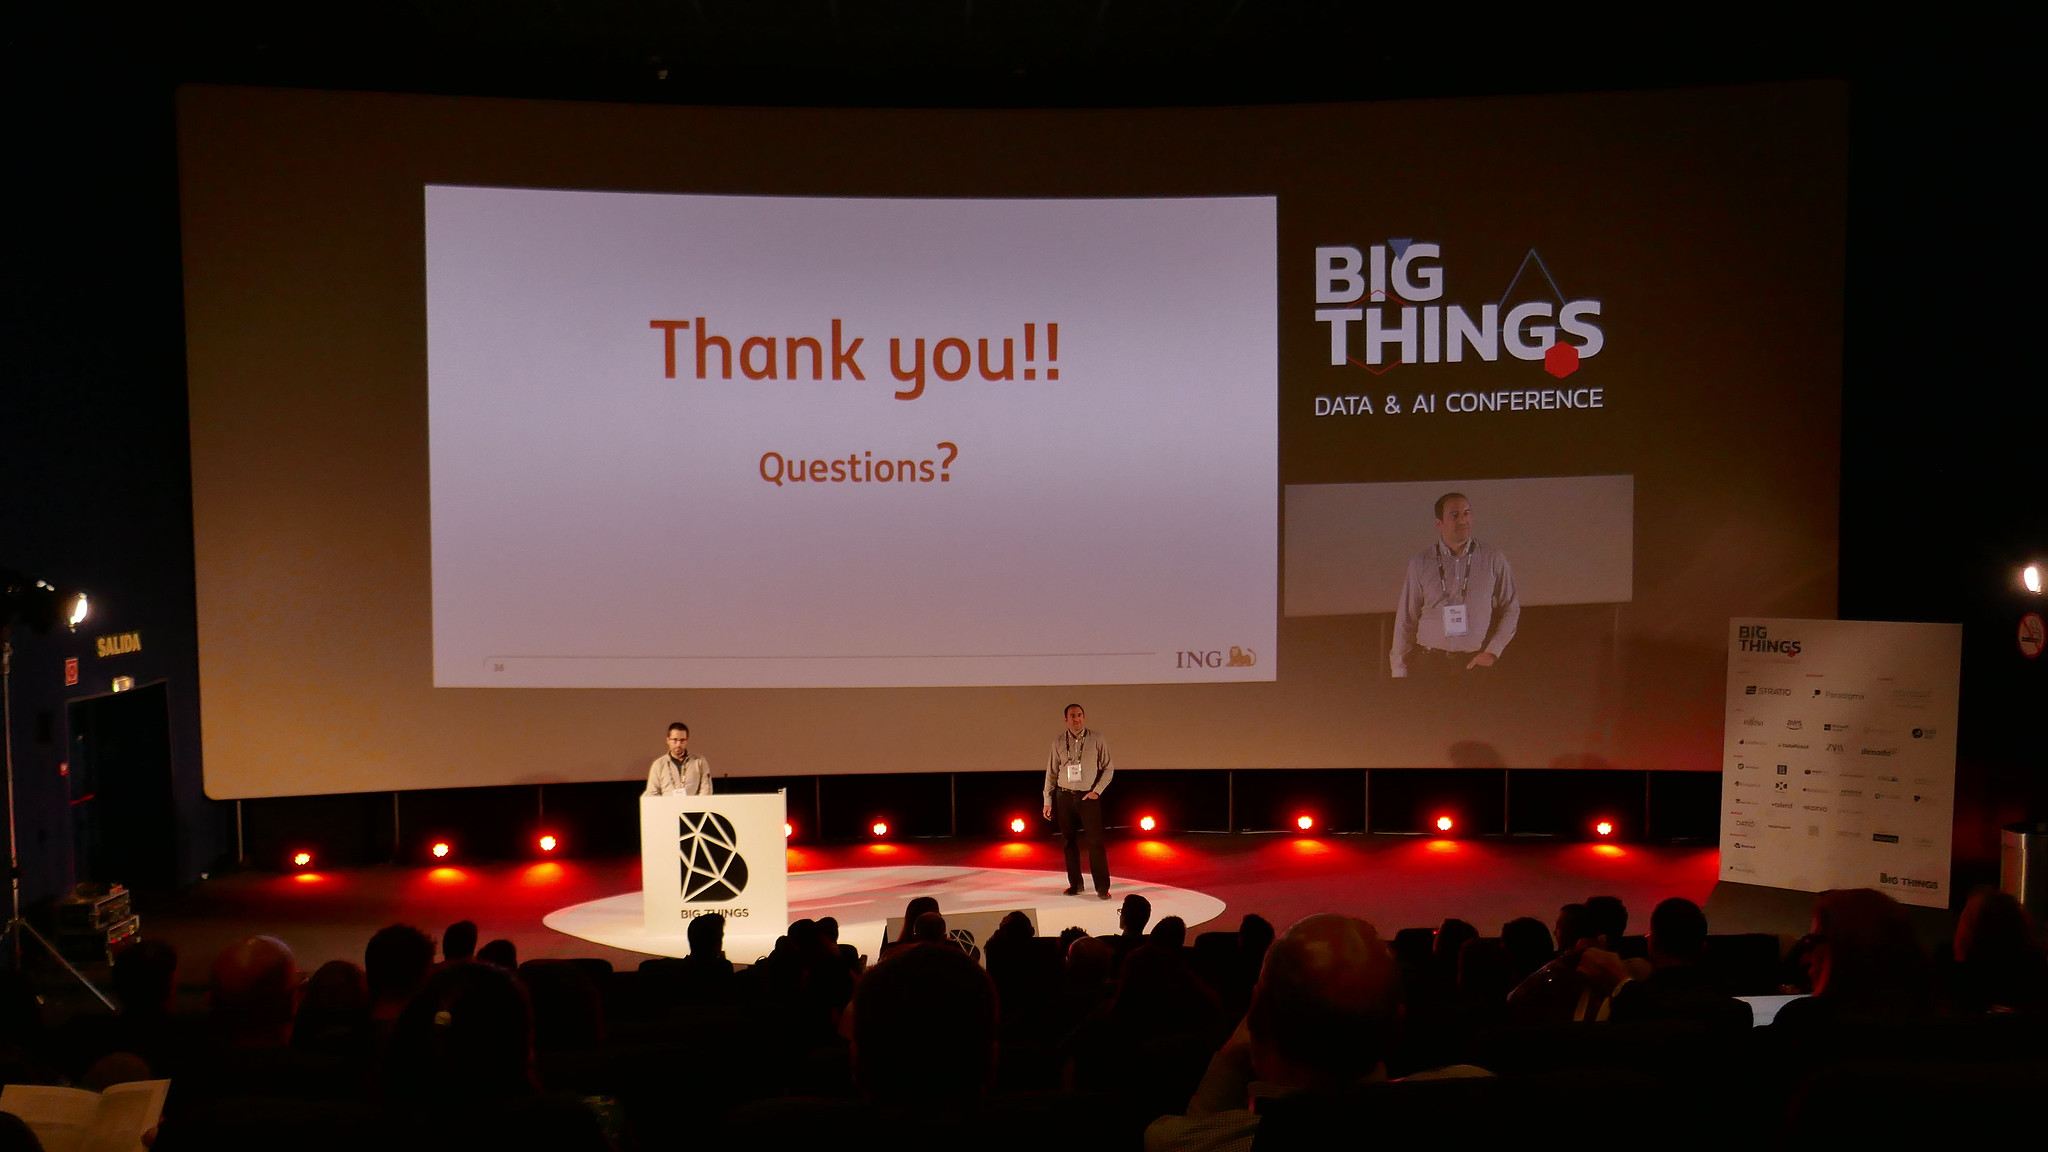 Finishing our talk at Big Things Conference 2019